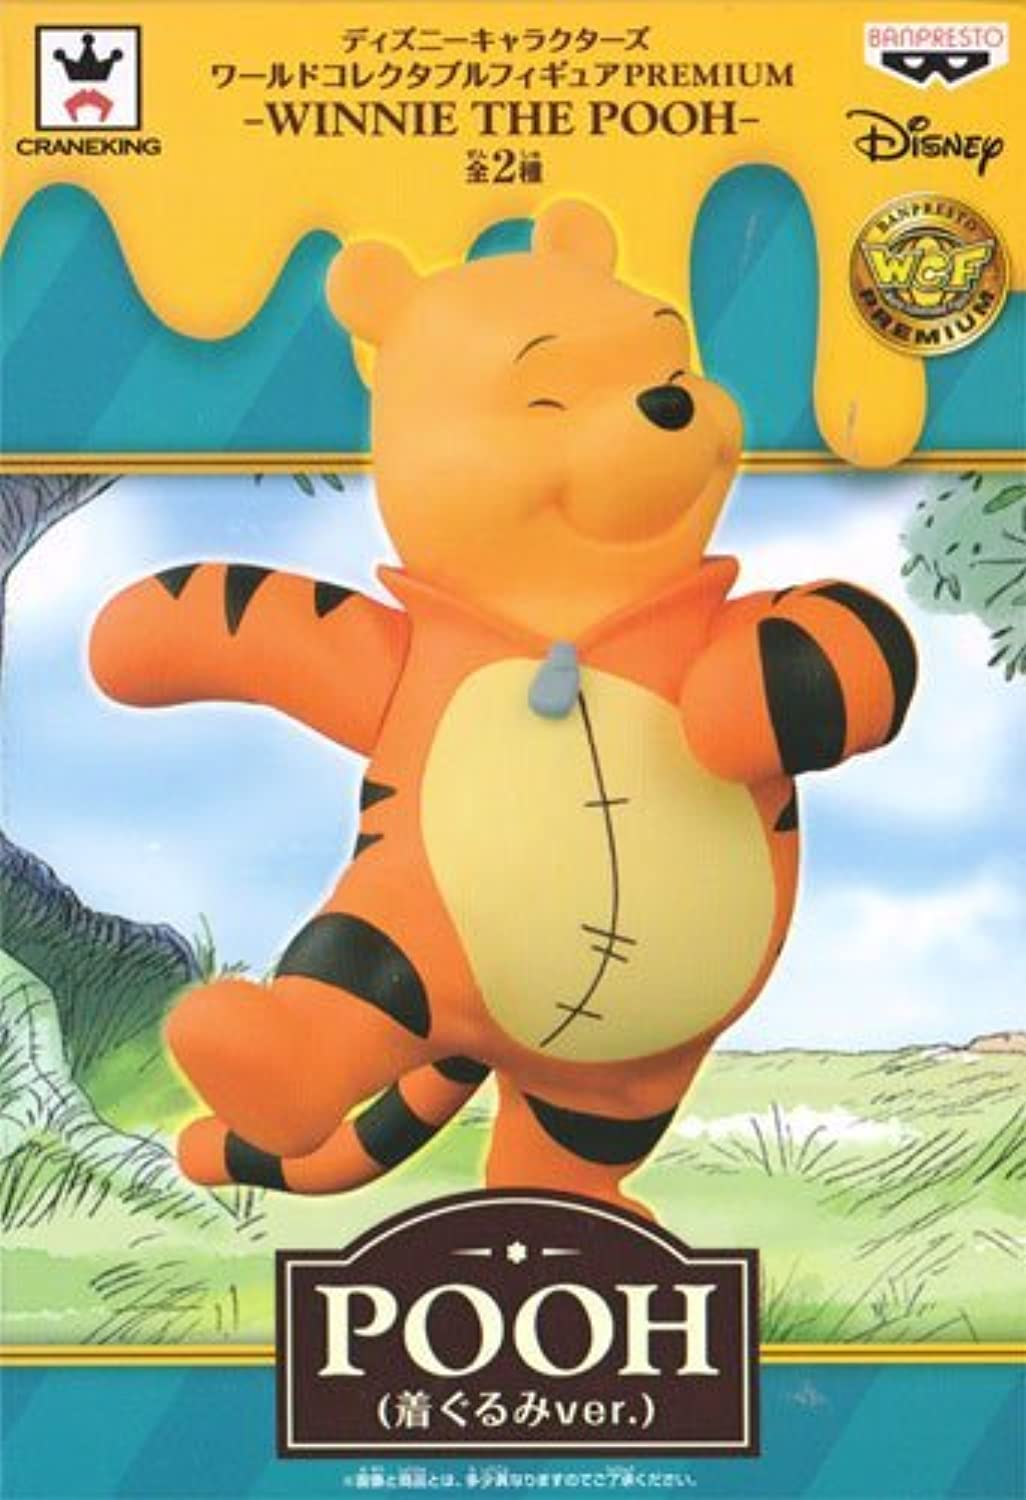 Disney Disney Characters World Collectible figures PREMIUMWINNIE THE POOH [Pooh (costume)]